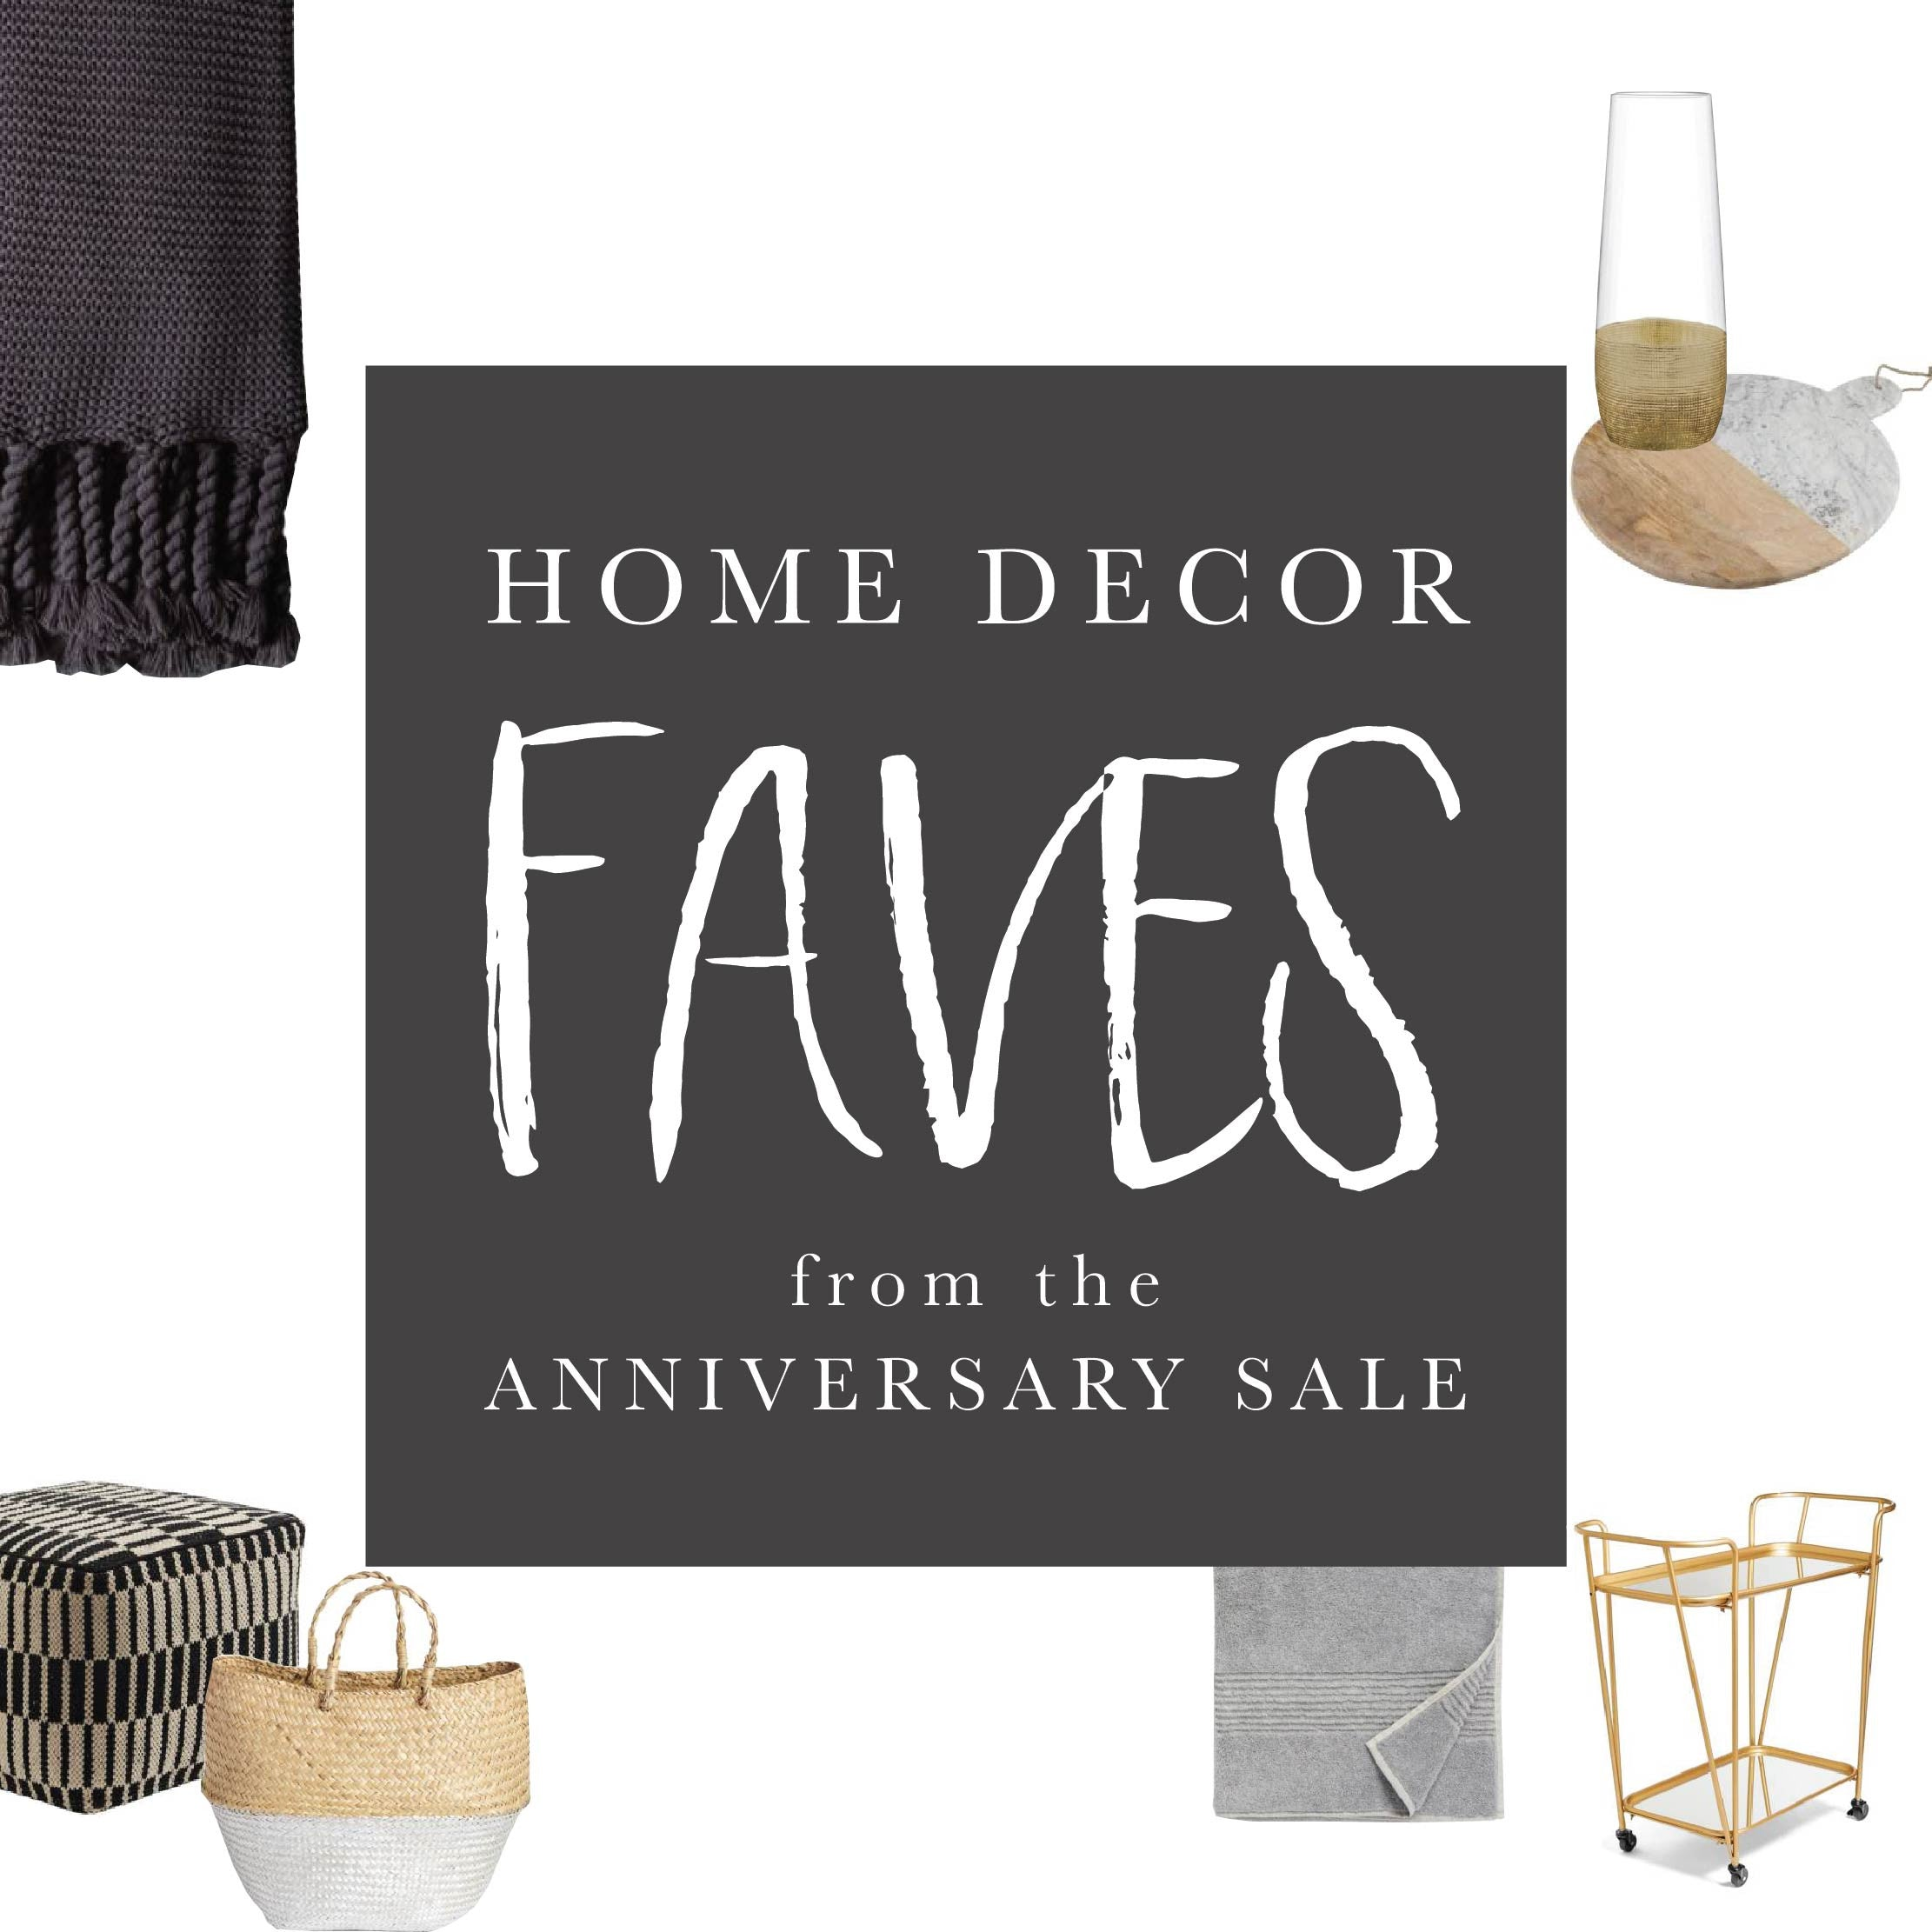 Home Decor FAVES from the Nordstrom Anniversary Sale!